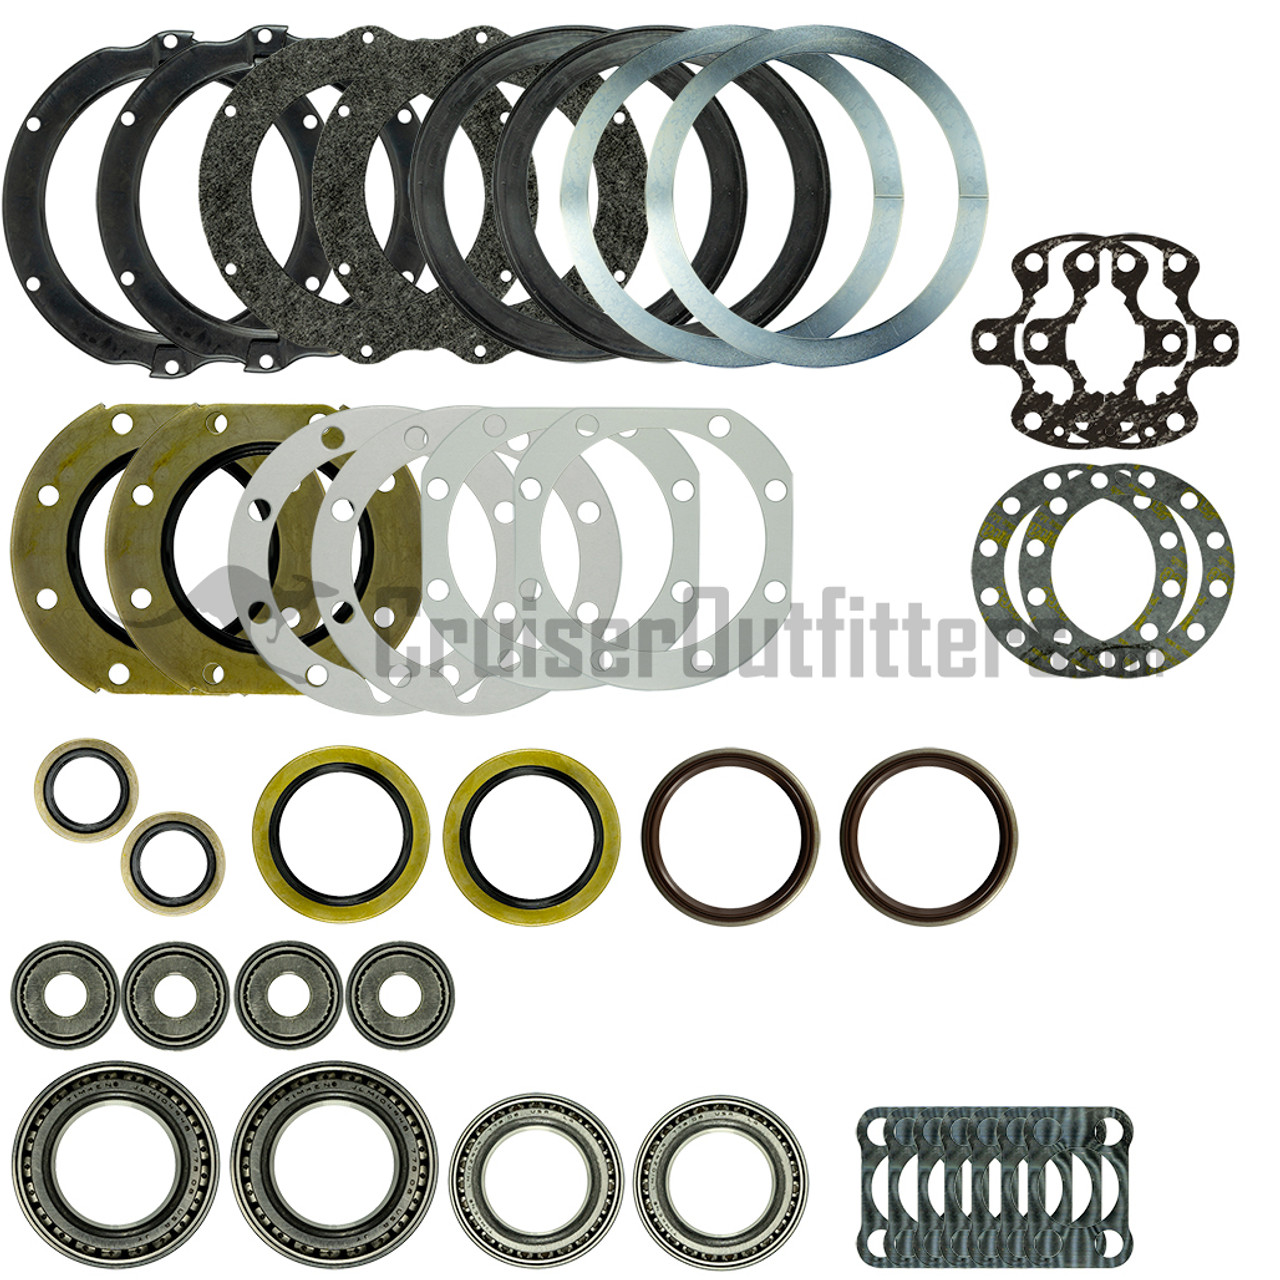 FA7X99ETWB - 1/1990-7/1999 Non-US 70 Series & Some Later Models w/6-Lug Axles w/ OE Electric Hubs Front Axle Rebuild Kit